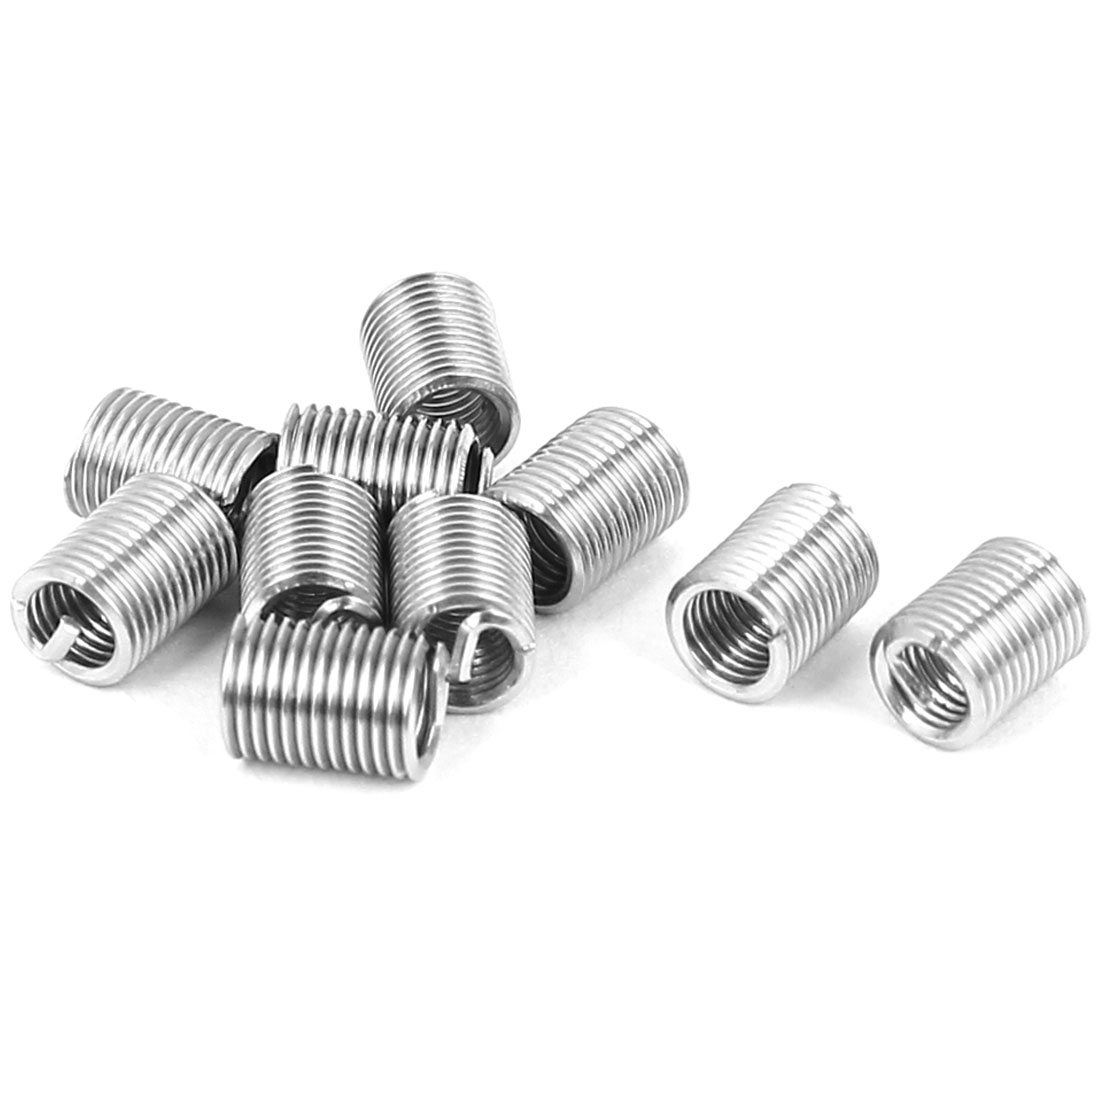 V-Coil Helical Wire Thread Repair Inserts 10pcs for M2.5 x 0.45mm x 3D